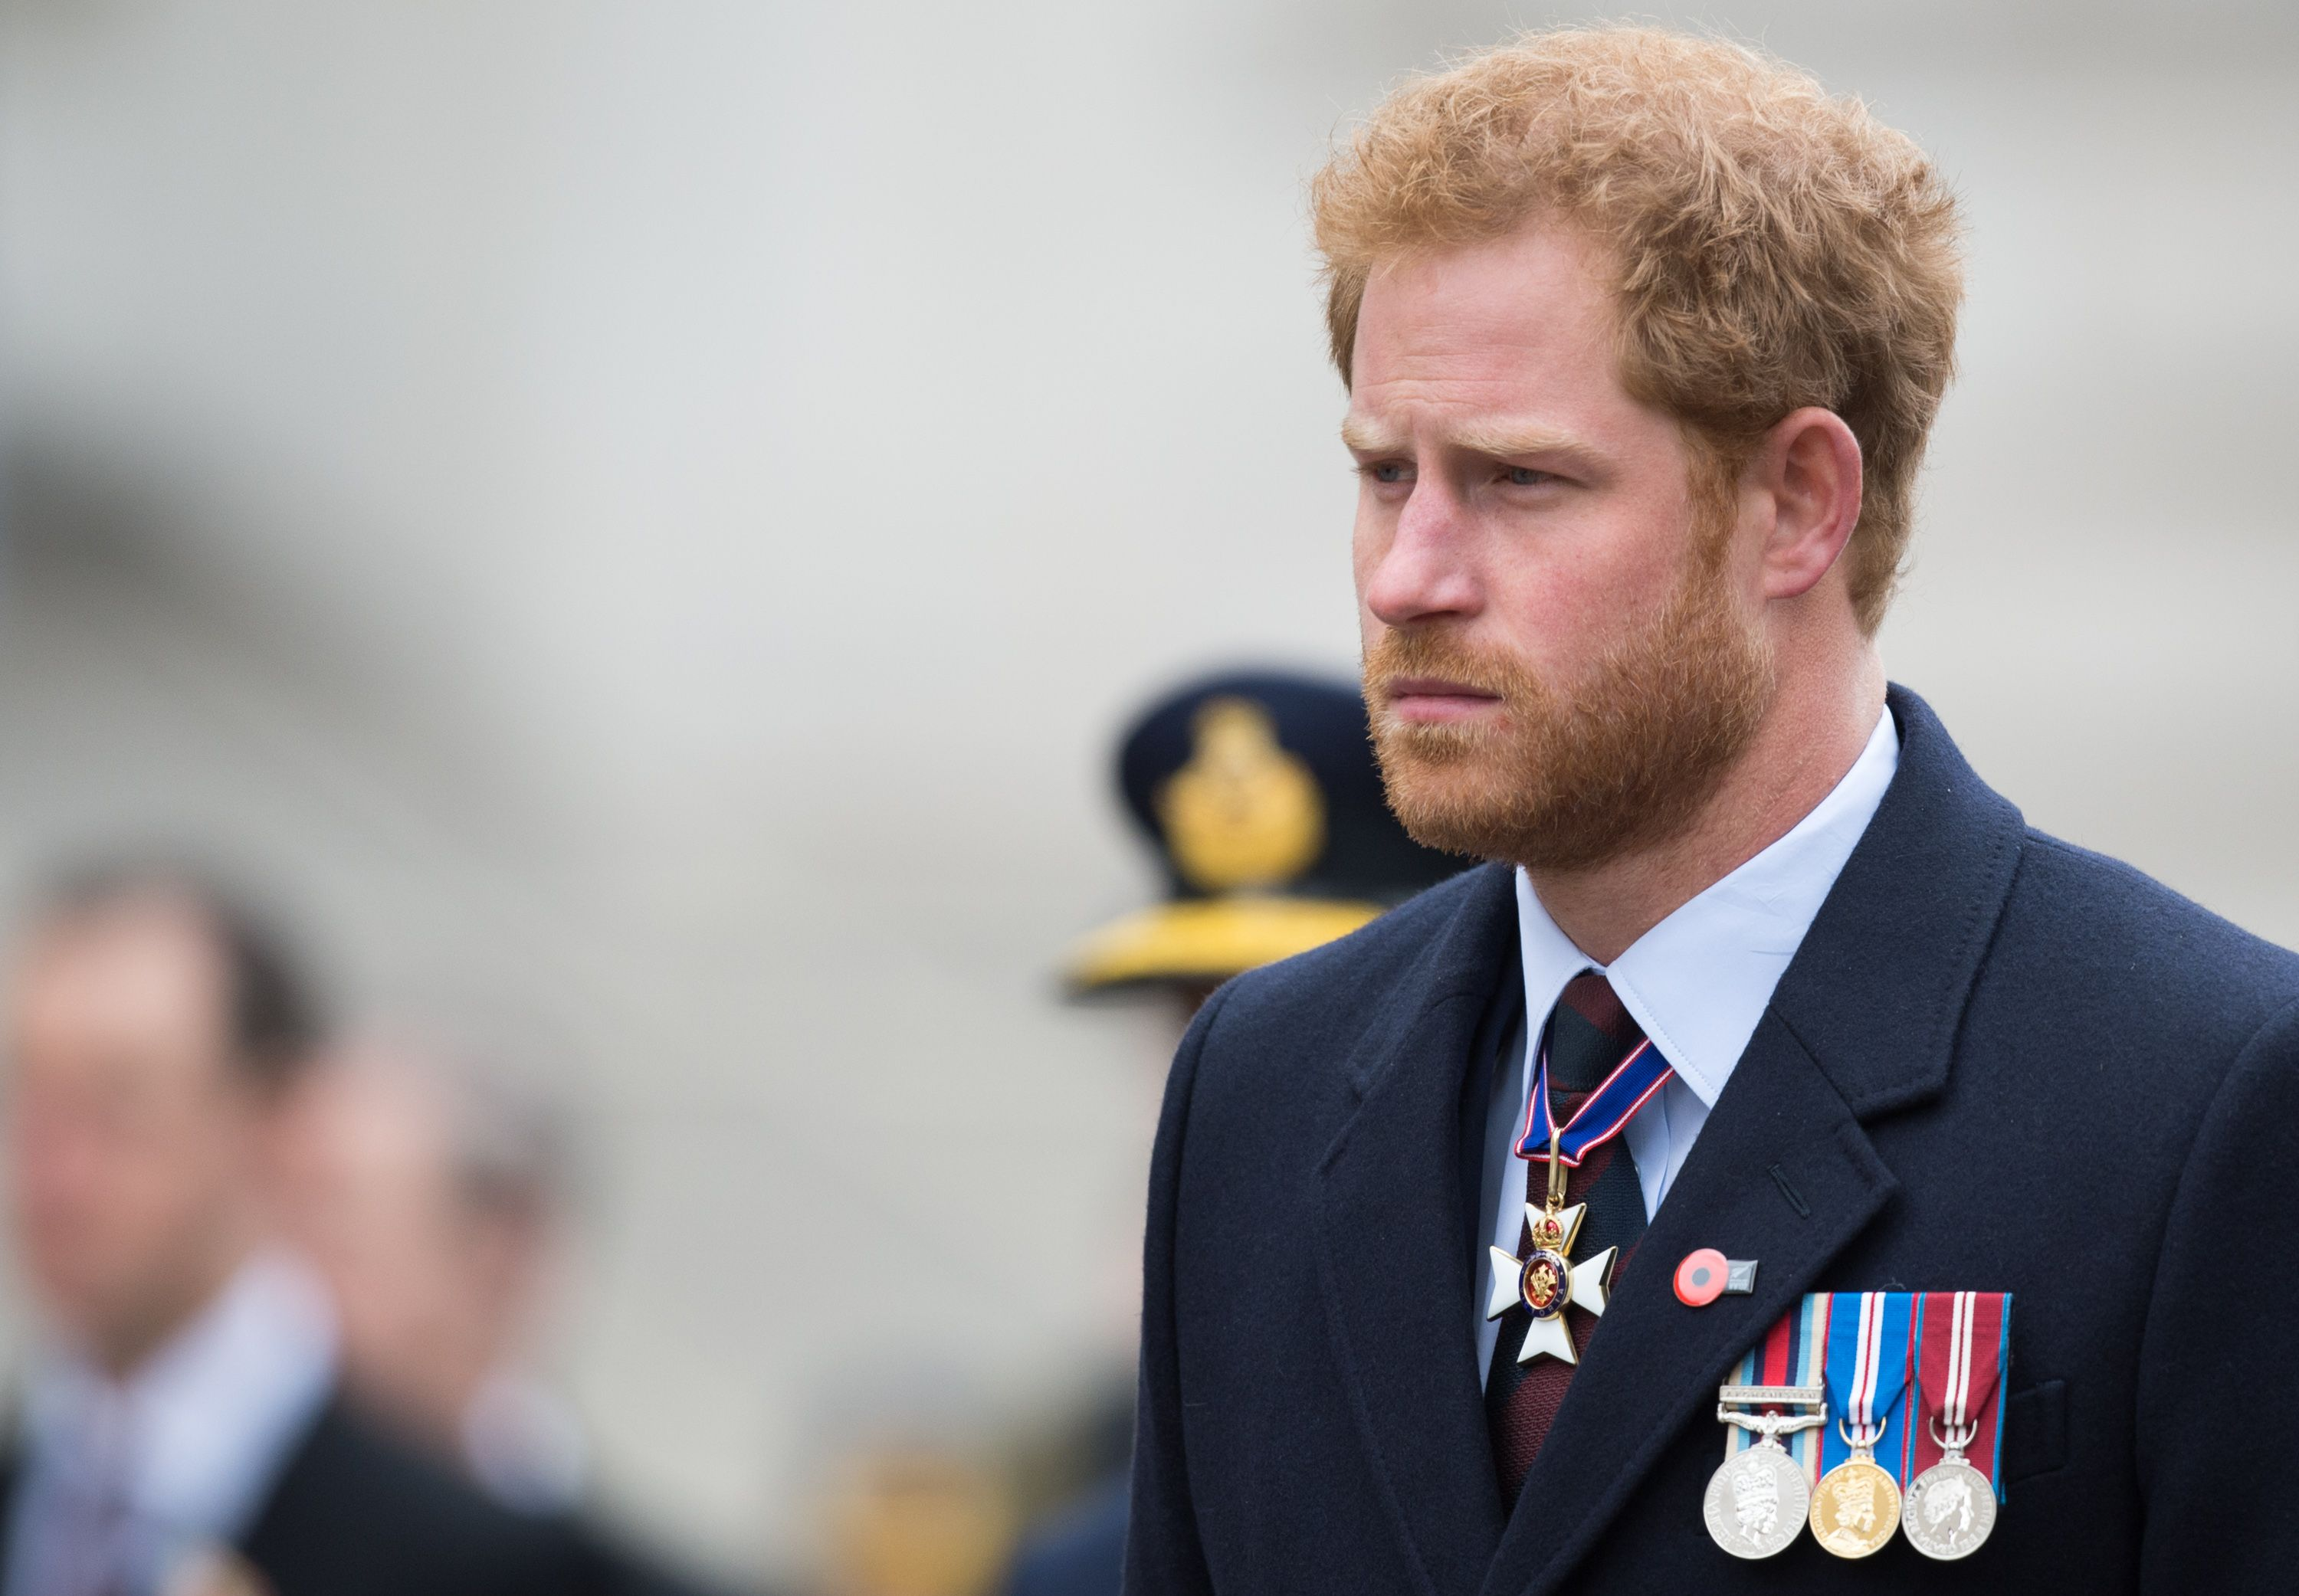 Prince Harry atthe ANZAC Service at The Cenotaph on April 25, 2016, in London, England | Photo:Samir Hussein/WireImage/Getty Images